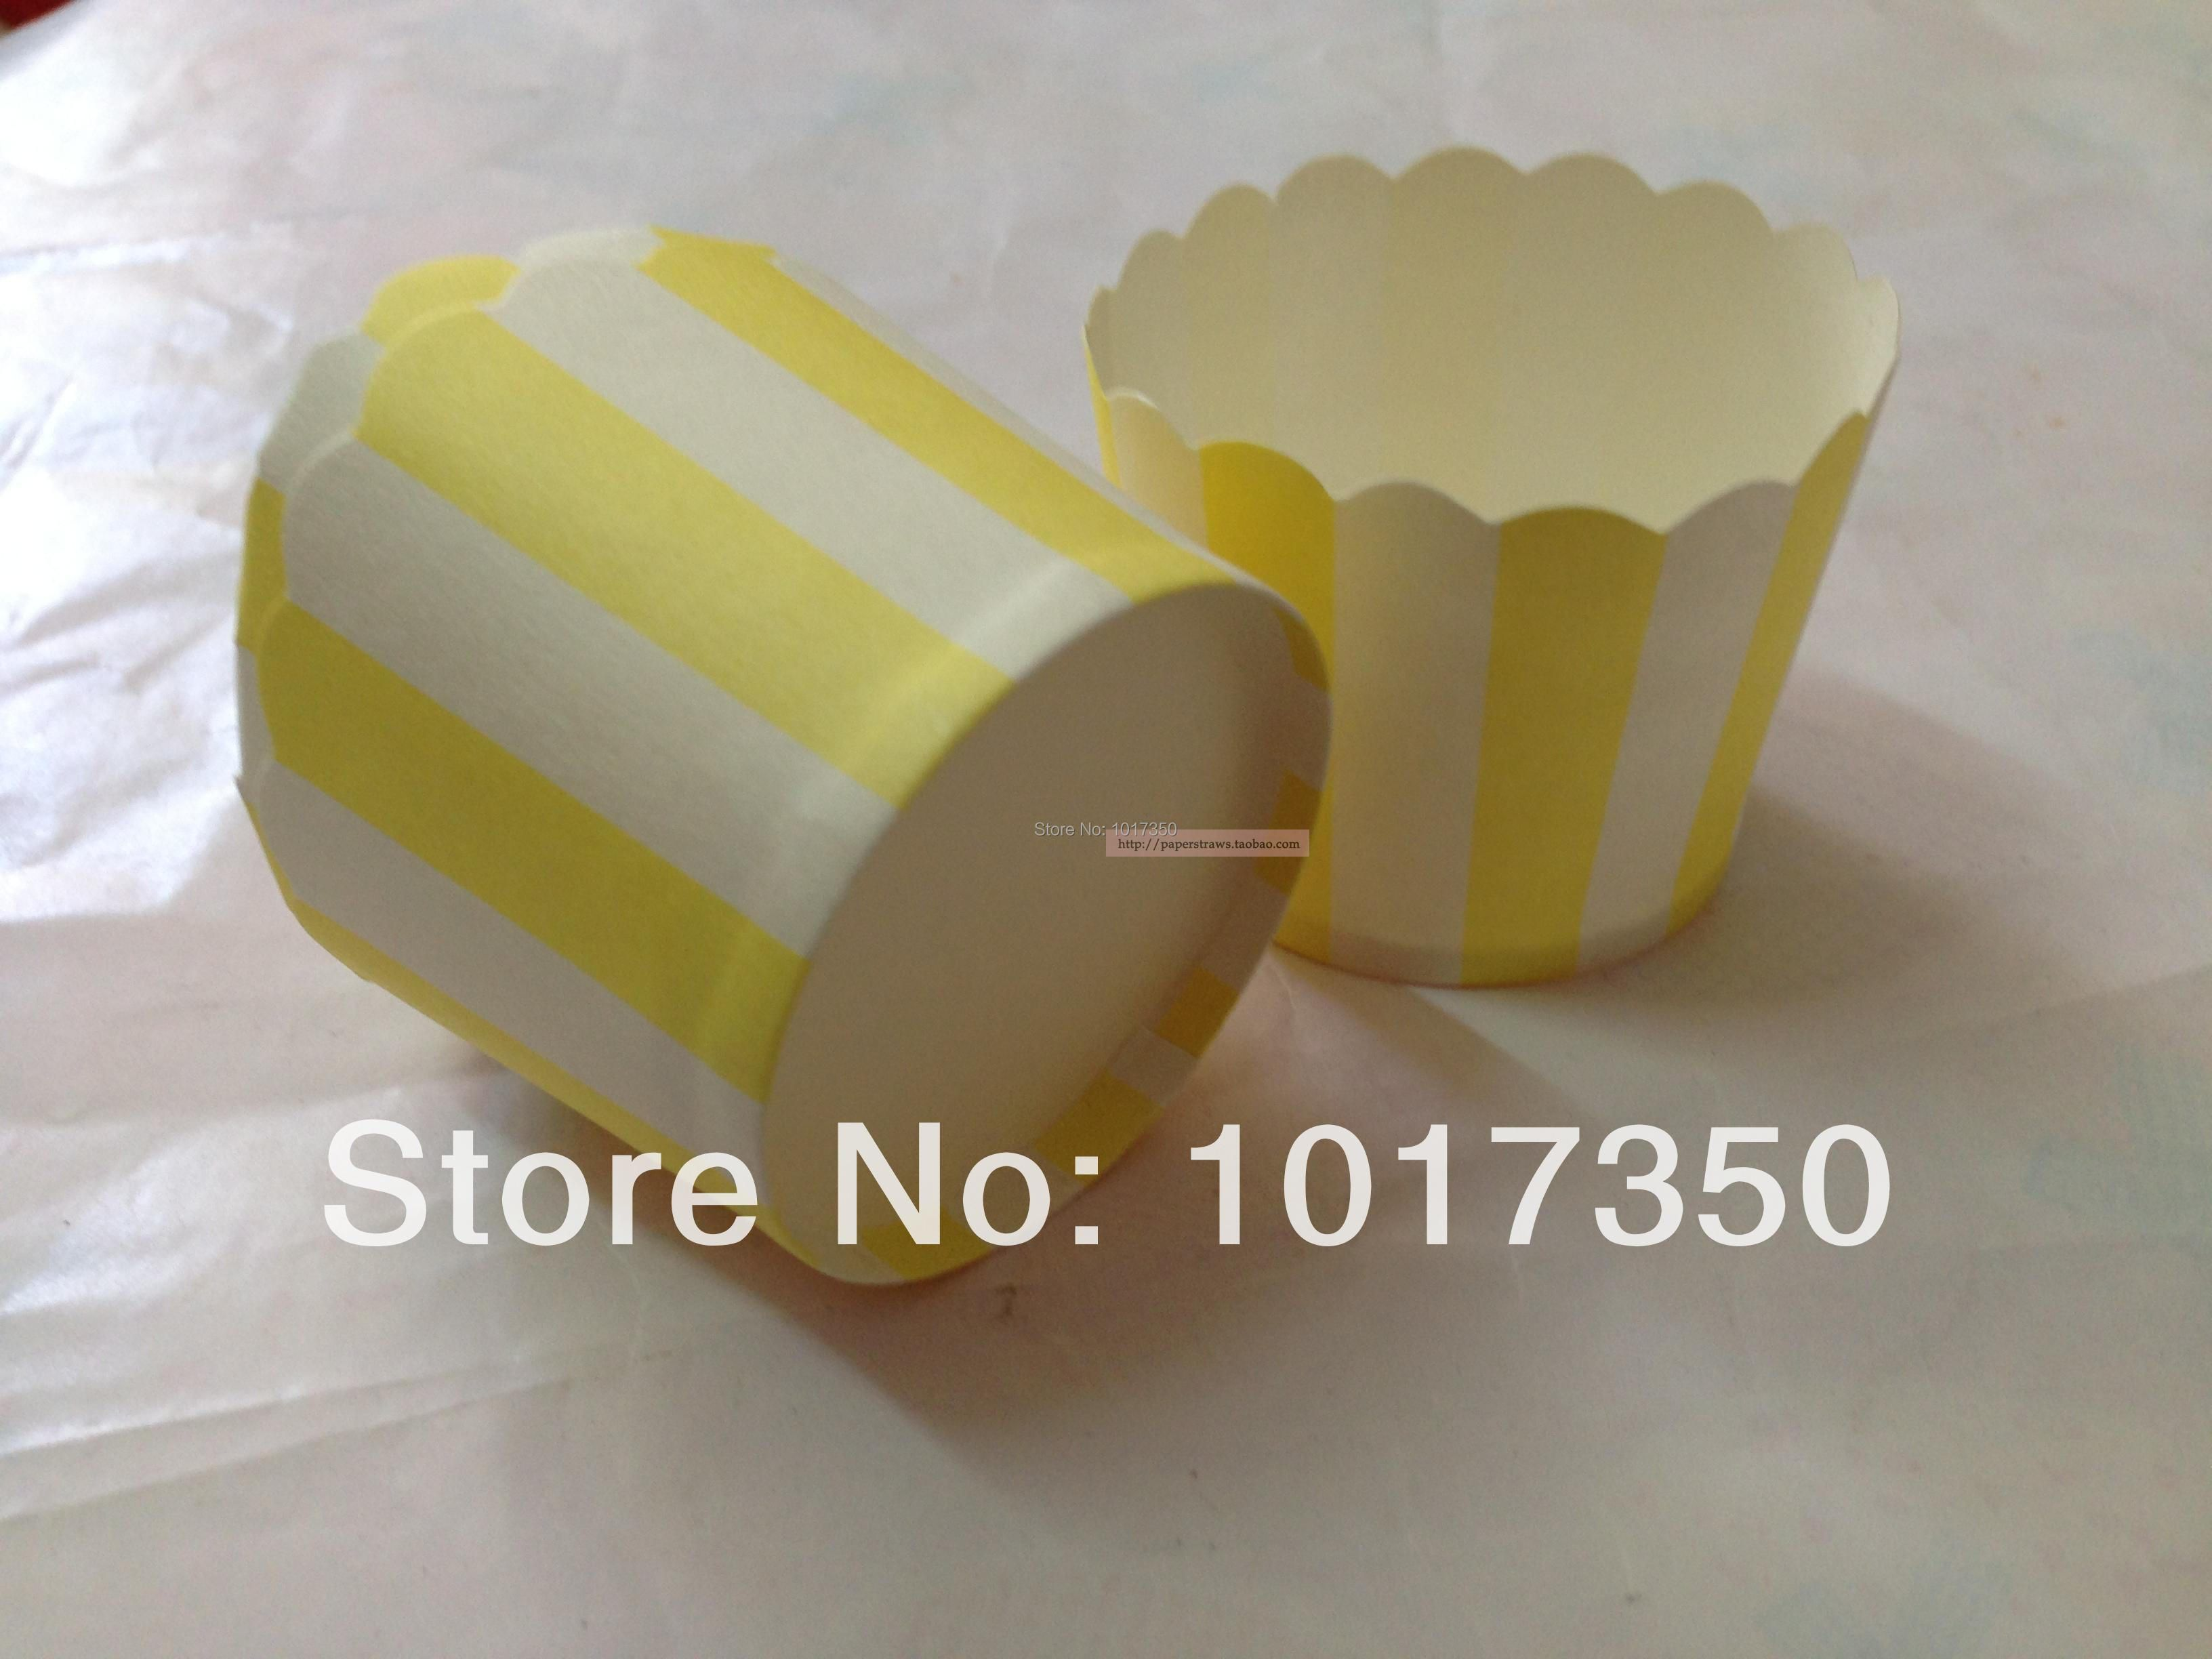 Free Shipping 100pcs yellow stripe paper Cupcake Liners Cupcake Wrappers Baking Muffin Cups cases mold for Wedding Christmas